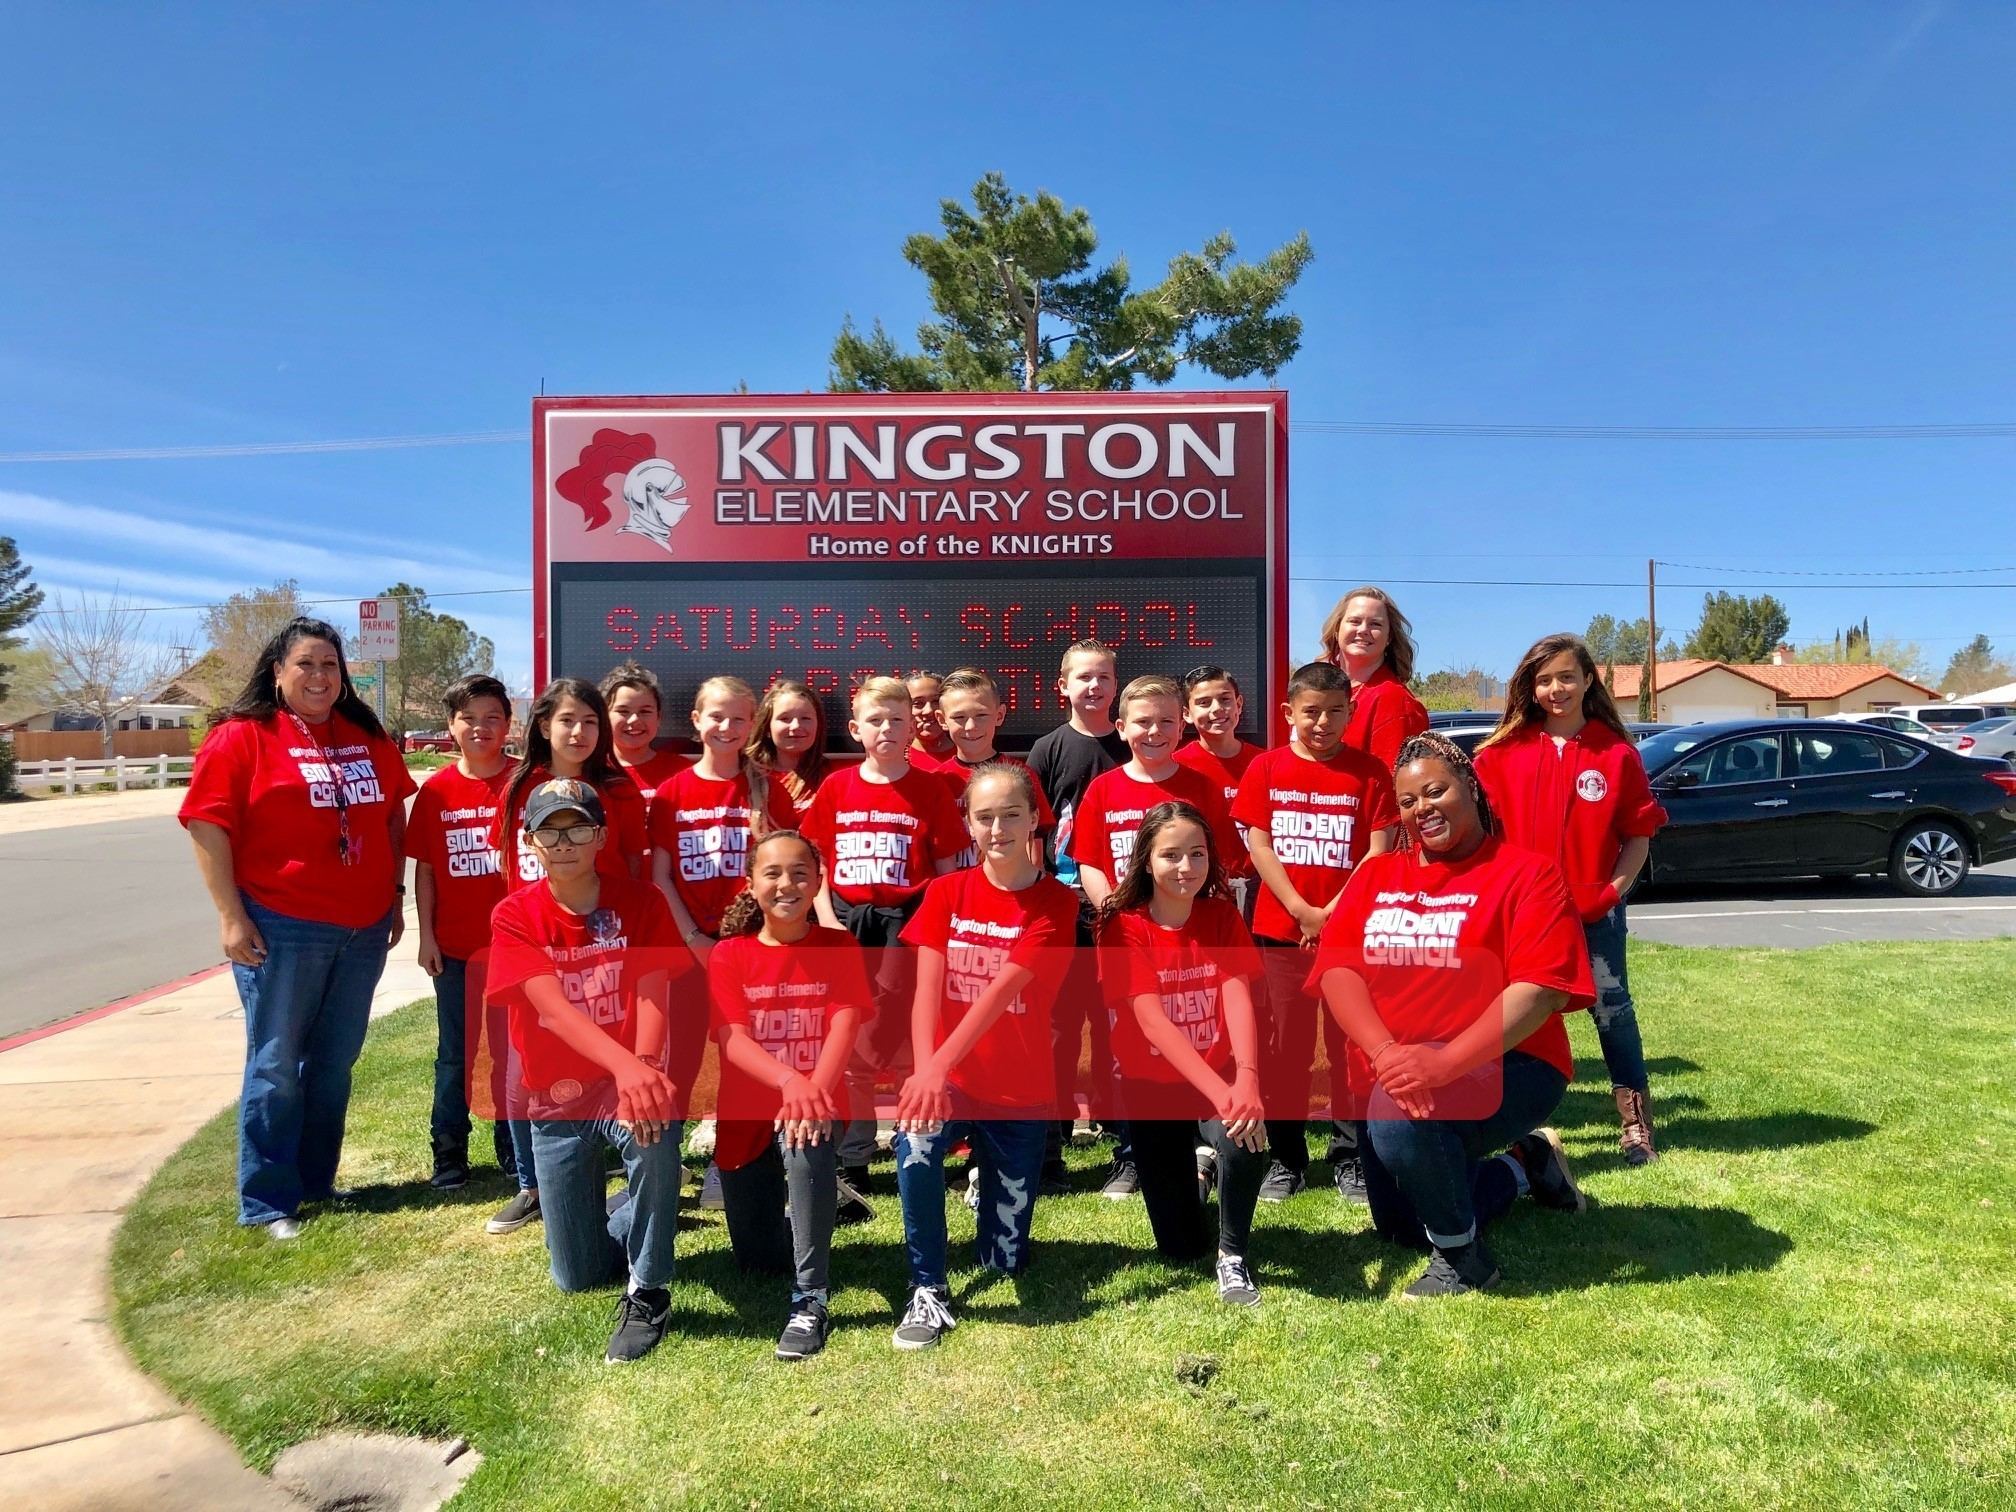 Kingston Student Council posing in front of sign